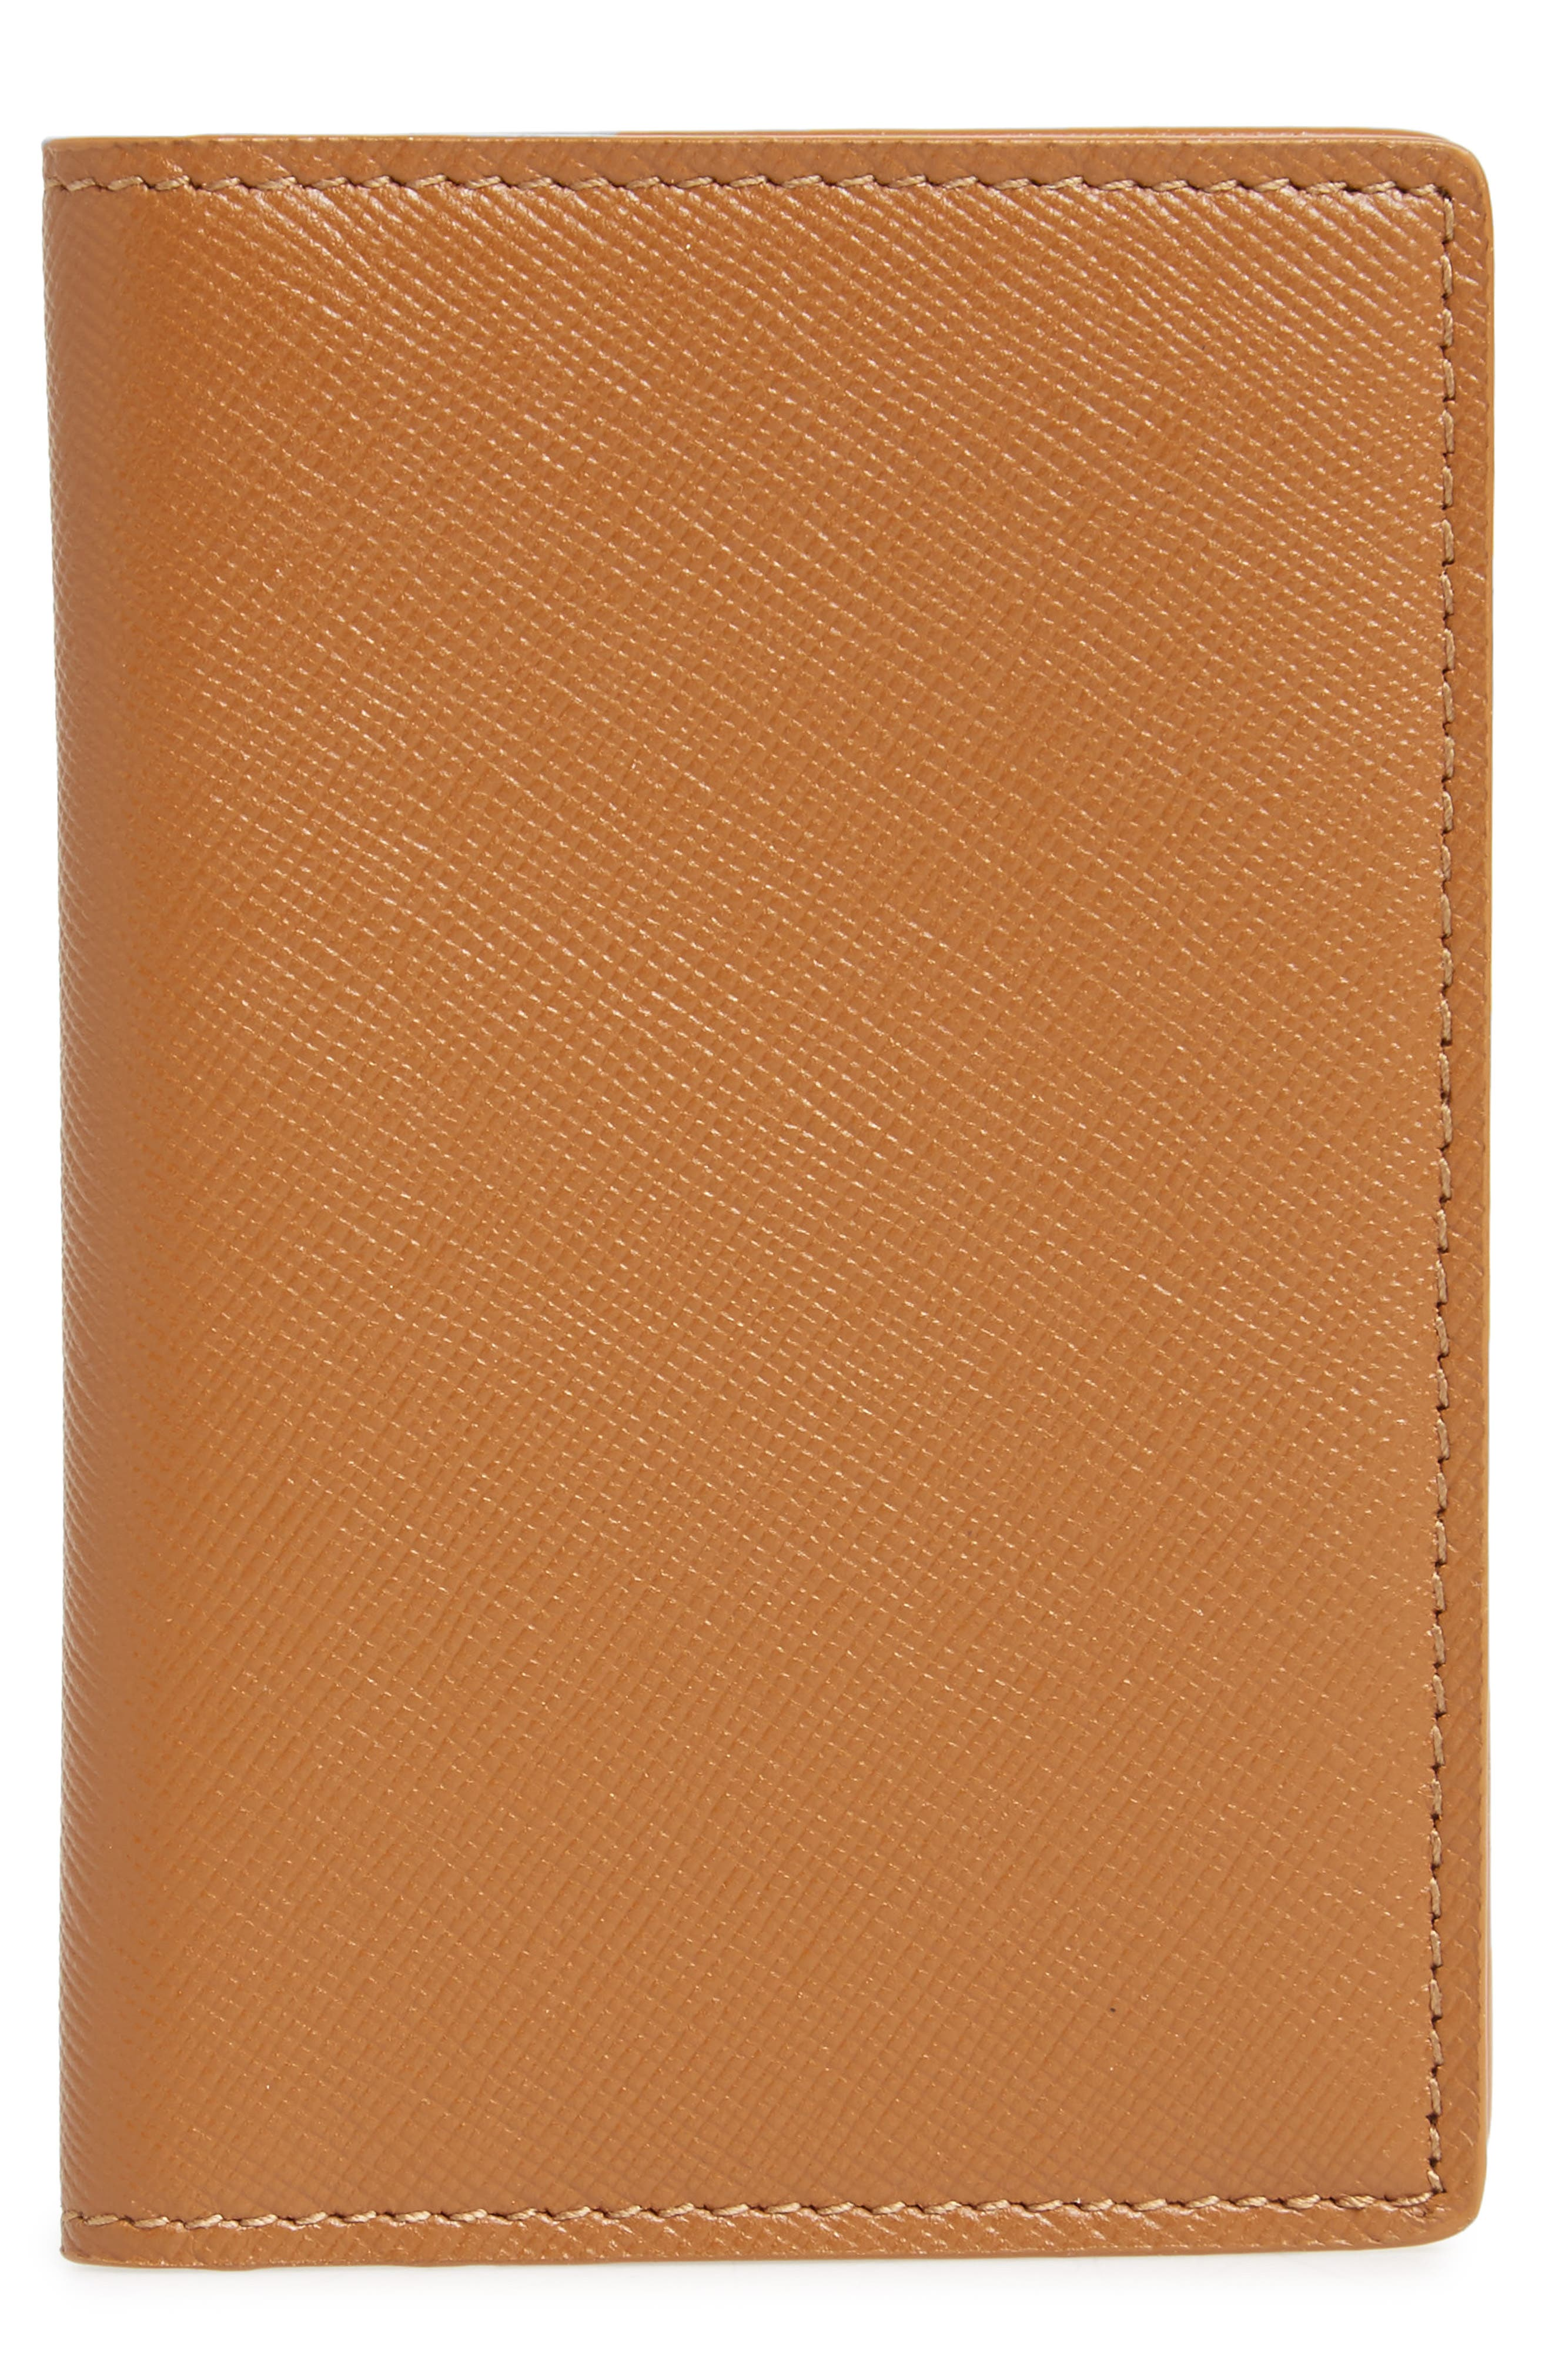 Saffiano Leather Folio Wallet,                             Main thumbnail 1, color,                             Brown